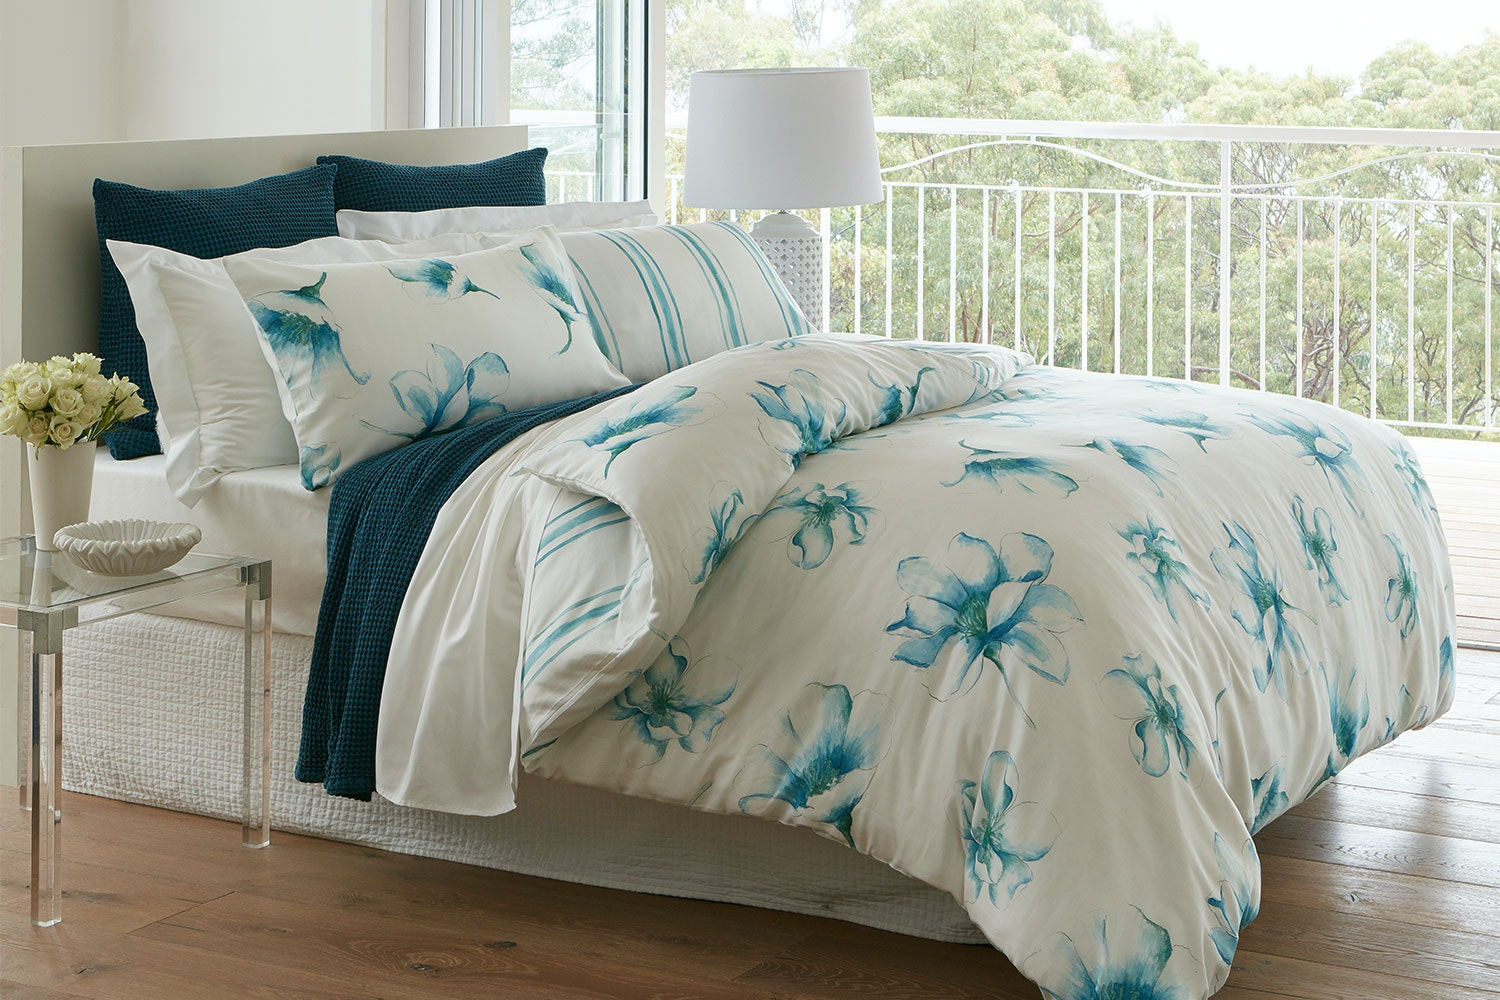 Waterlily Duvet Cover Set by Baksana